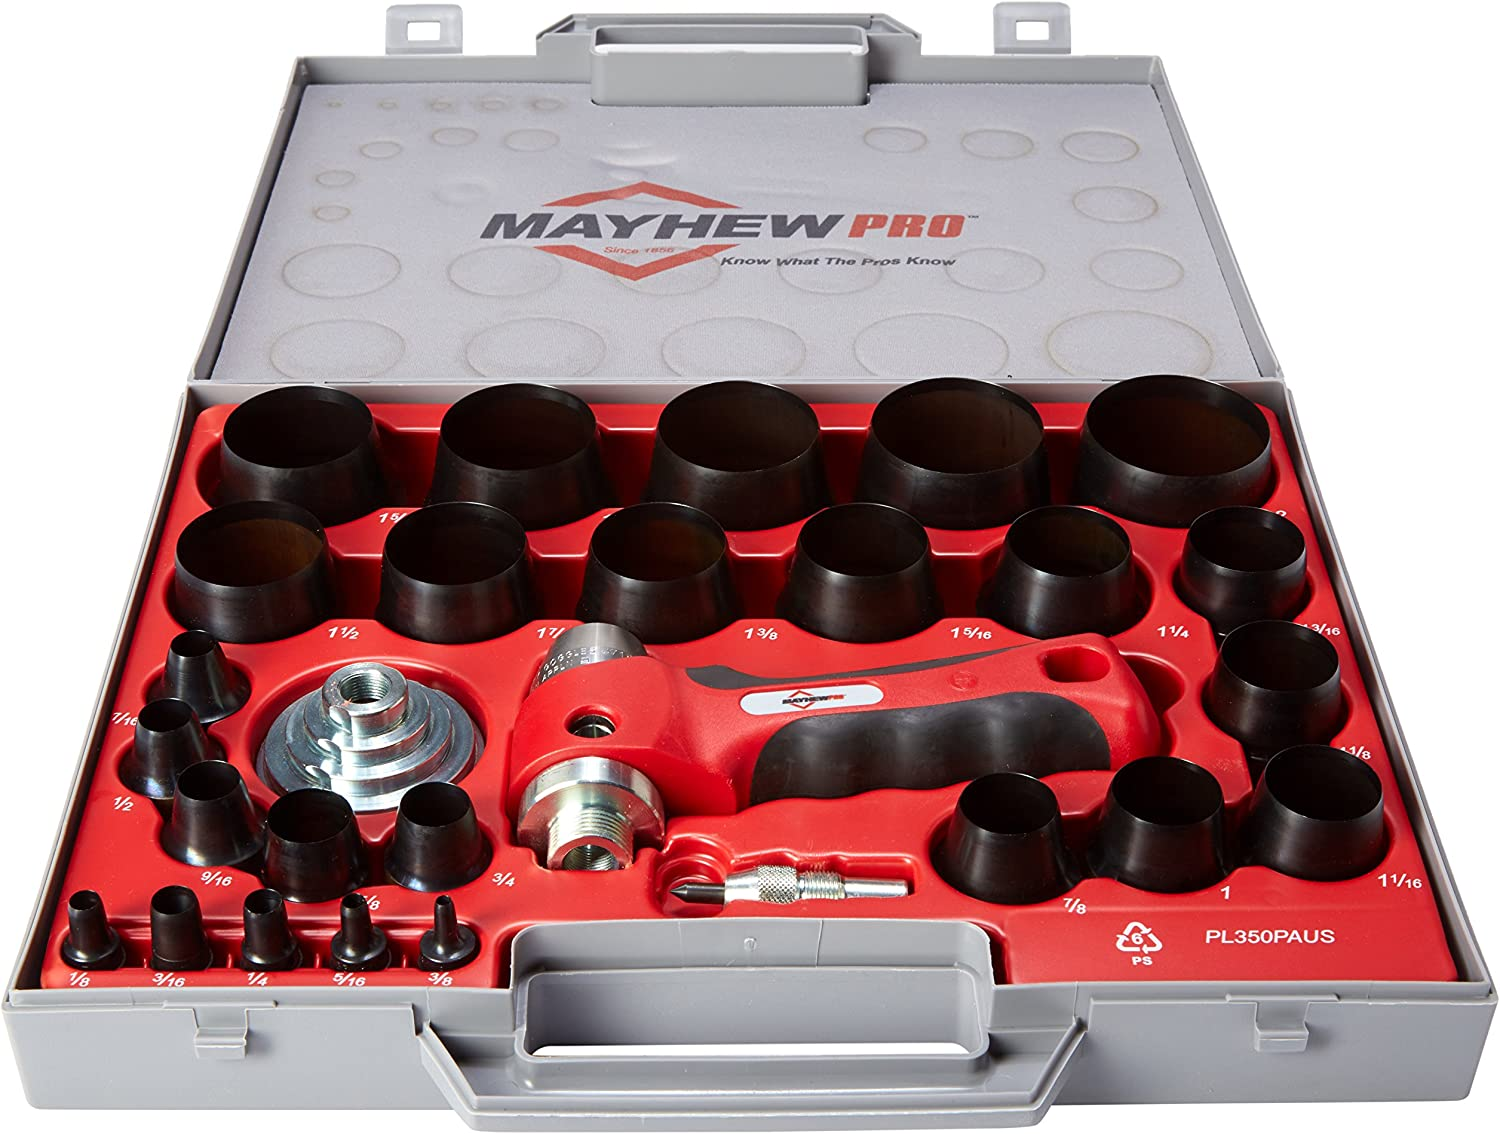 Mayhew Pro 66080 1 8-Inch Omaha Mall to 2-Inch Manufacturer regenerated product Punch SAE Imperial Hollow Se